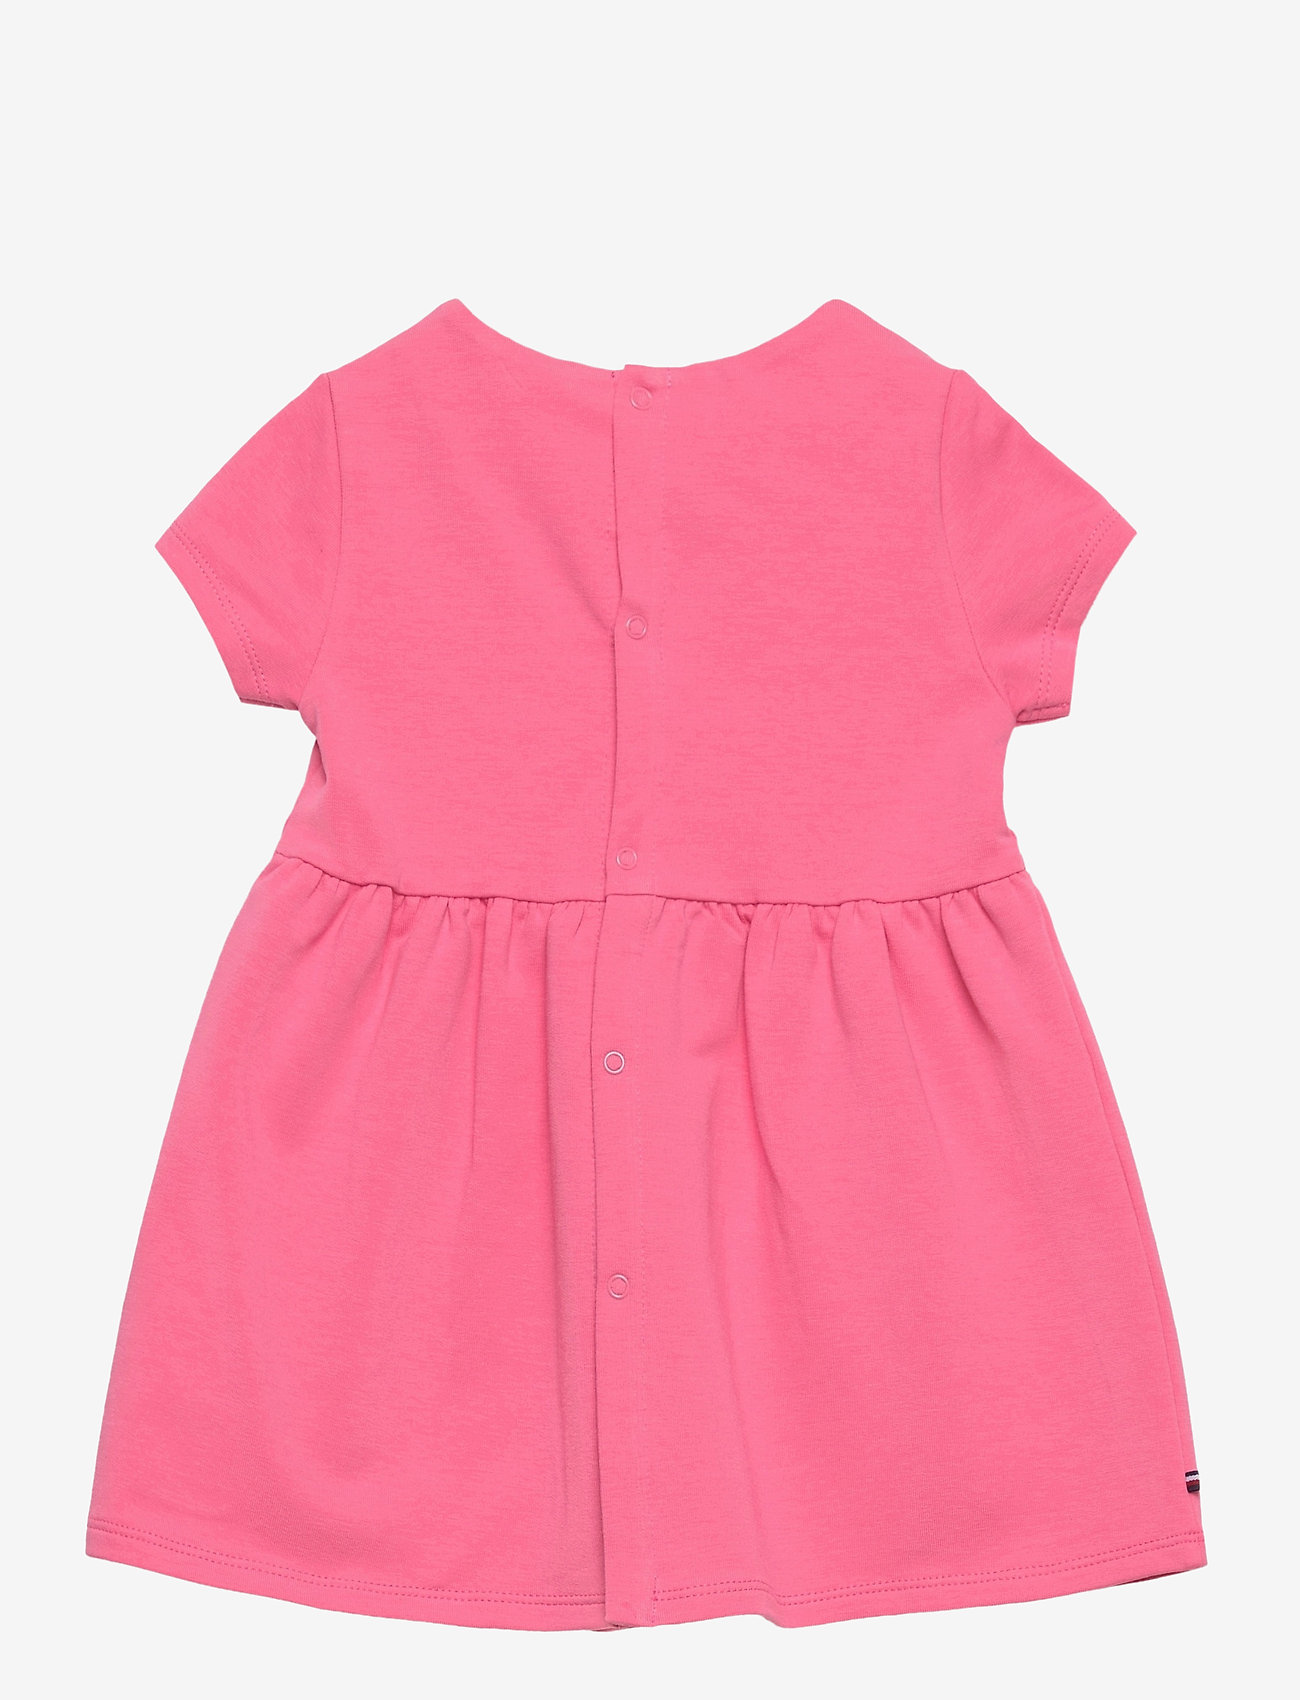 Tommy Hilfiger - BABY ESSENTIAL DRESS S/S - kleider - exotic pink - 1